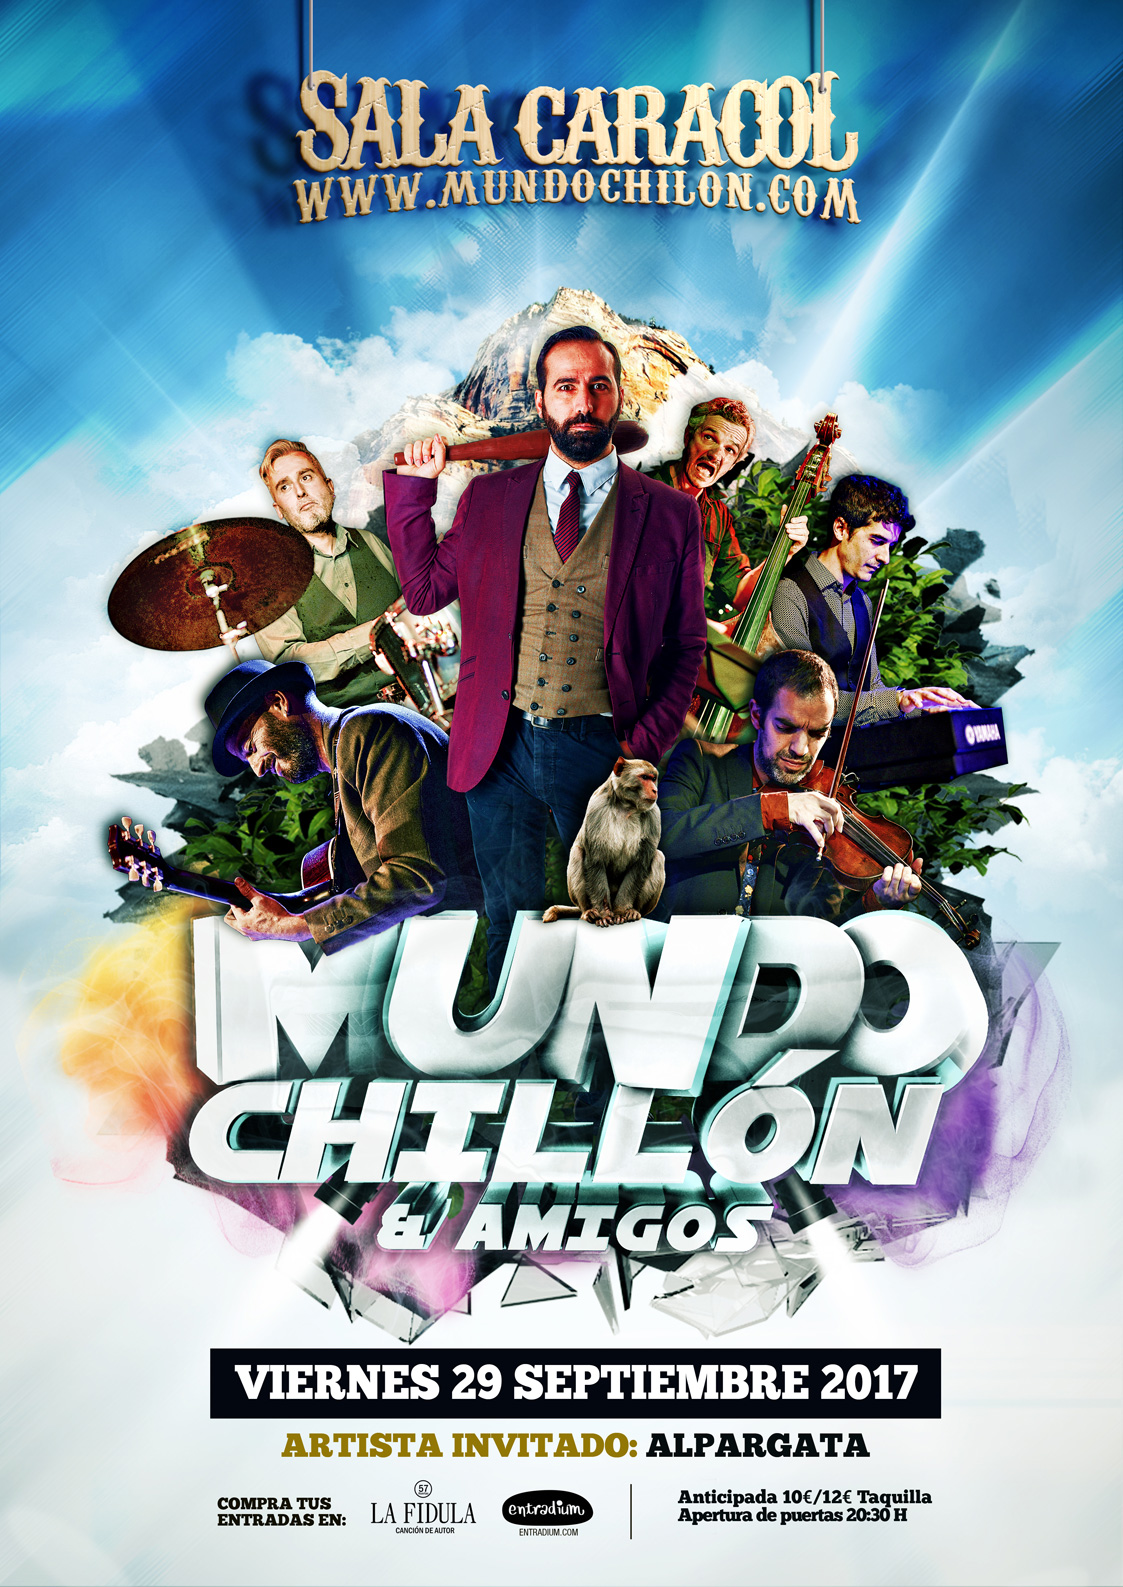 MUNDO CHILLON & AMIGOS